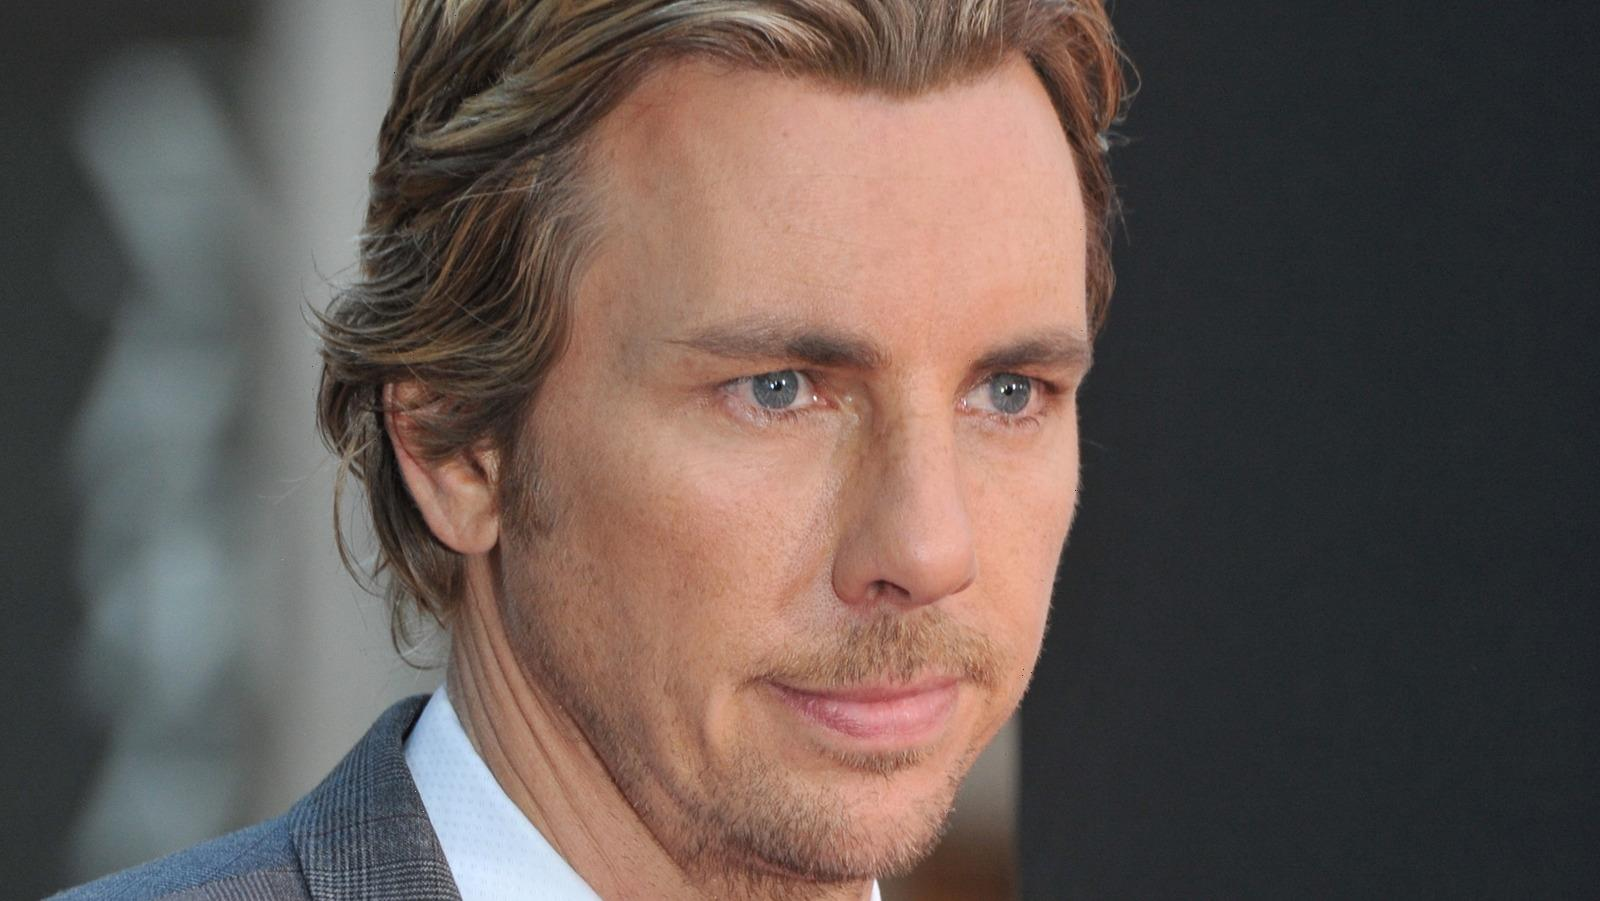 Dax Shepard's Net Worth: The Actor And Podcast Host Makes More Than You Think